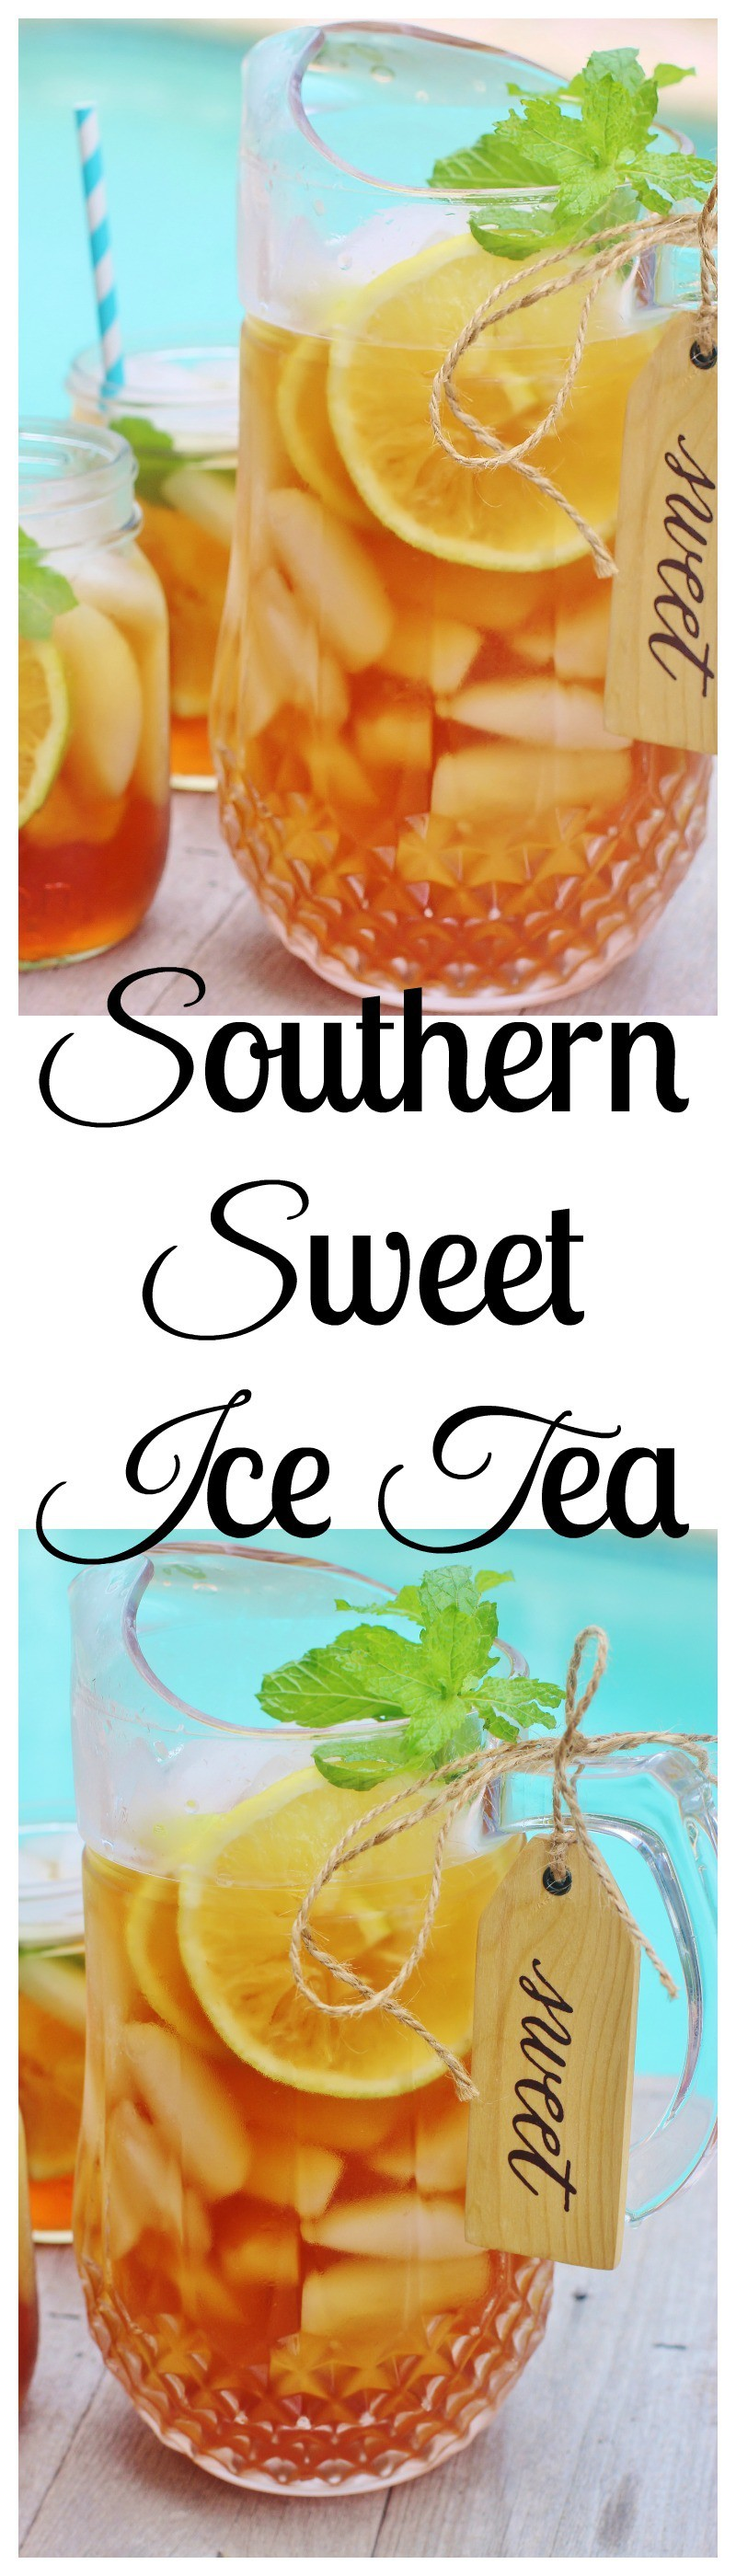 Southern Sweet Ice Tea | Syrup and Biscuits